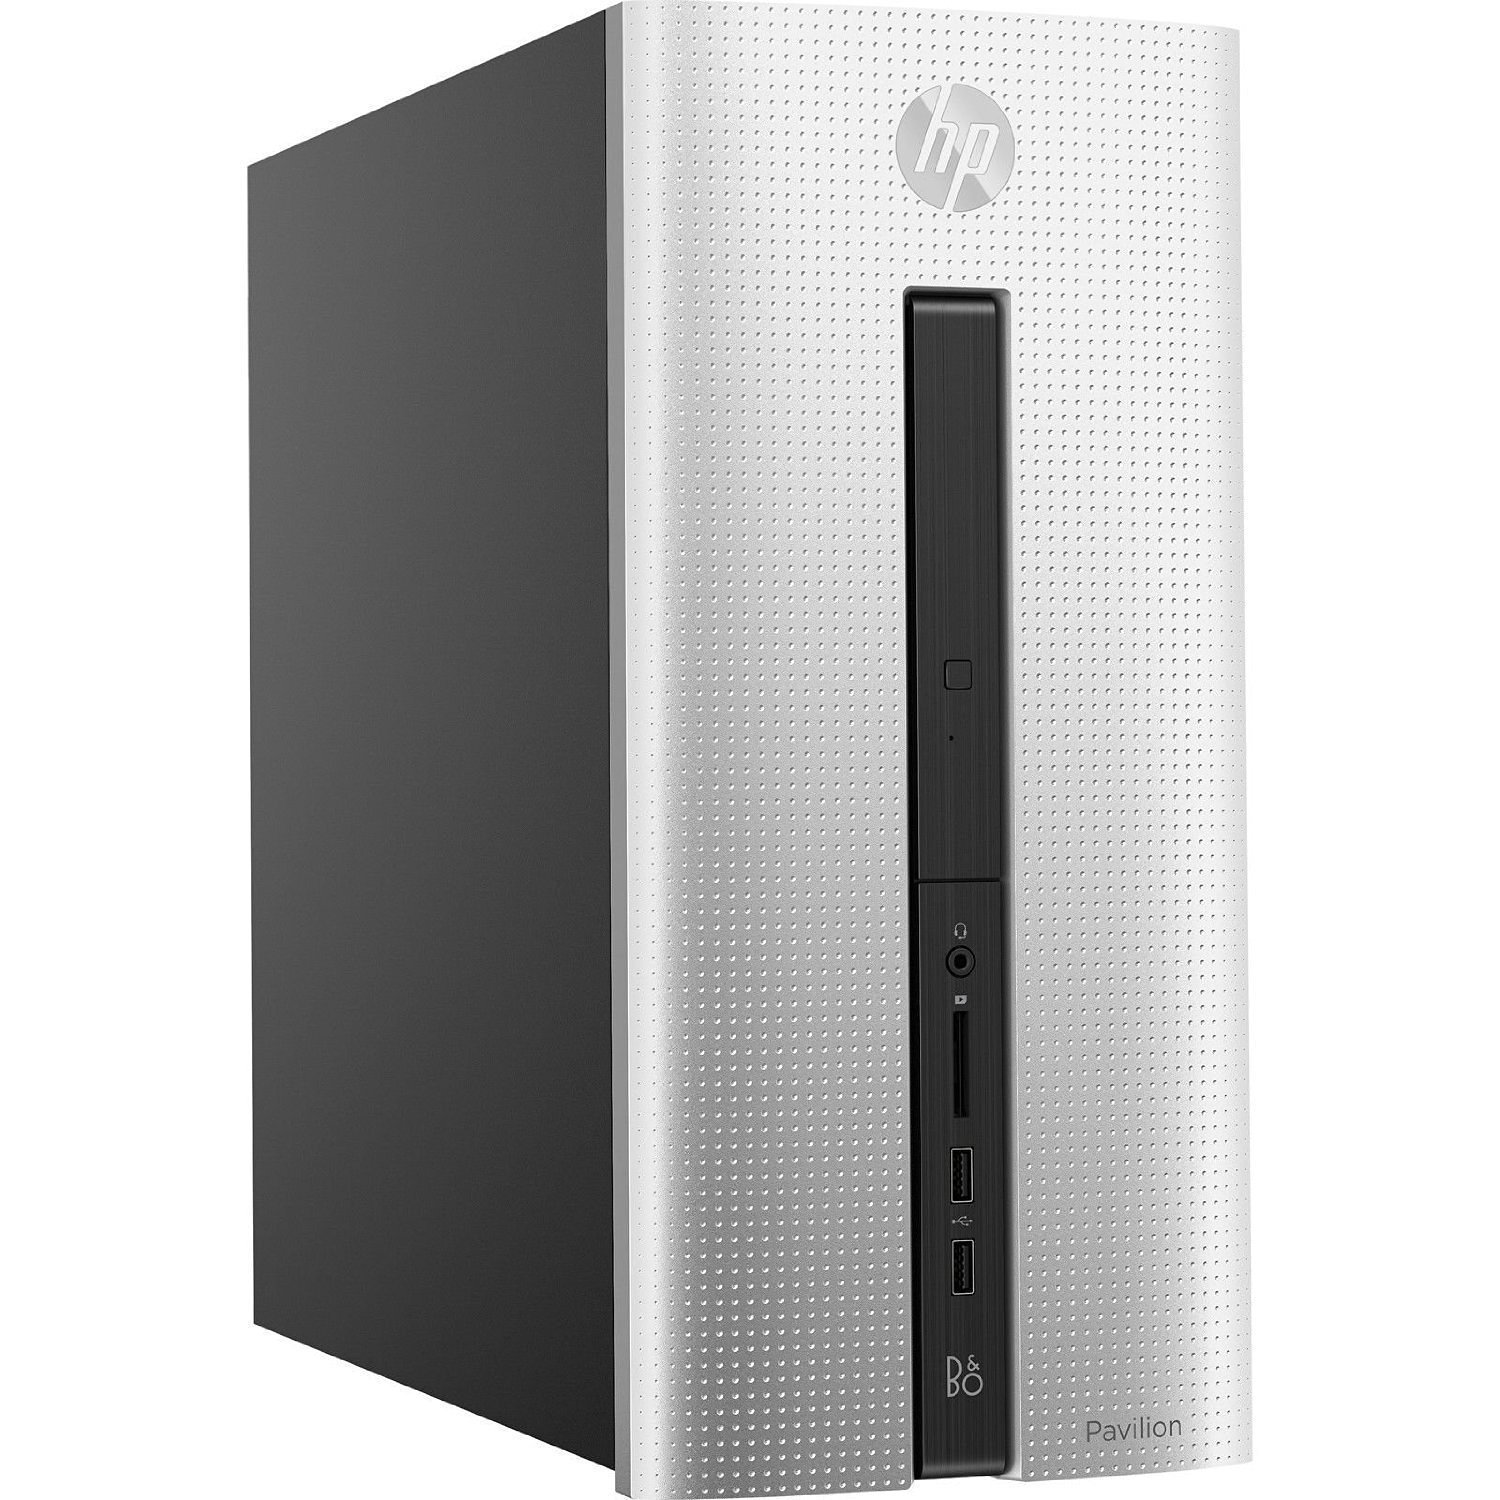 Certified Refurbished Like New HP Desktop Computer 550 AMD Quad Core 8GB Memory, 1 Terabyte Hard Drive, DVD+RW, WiFi,... by HP